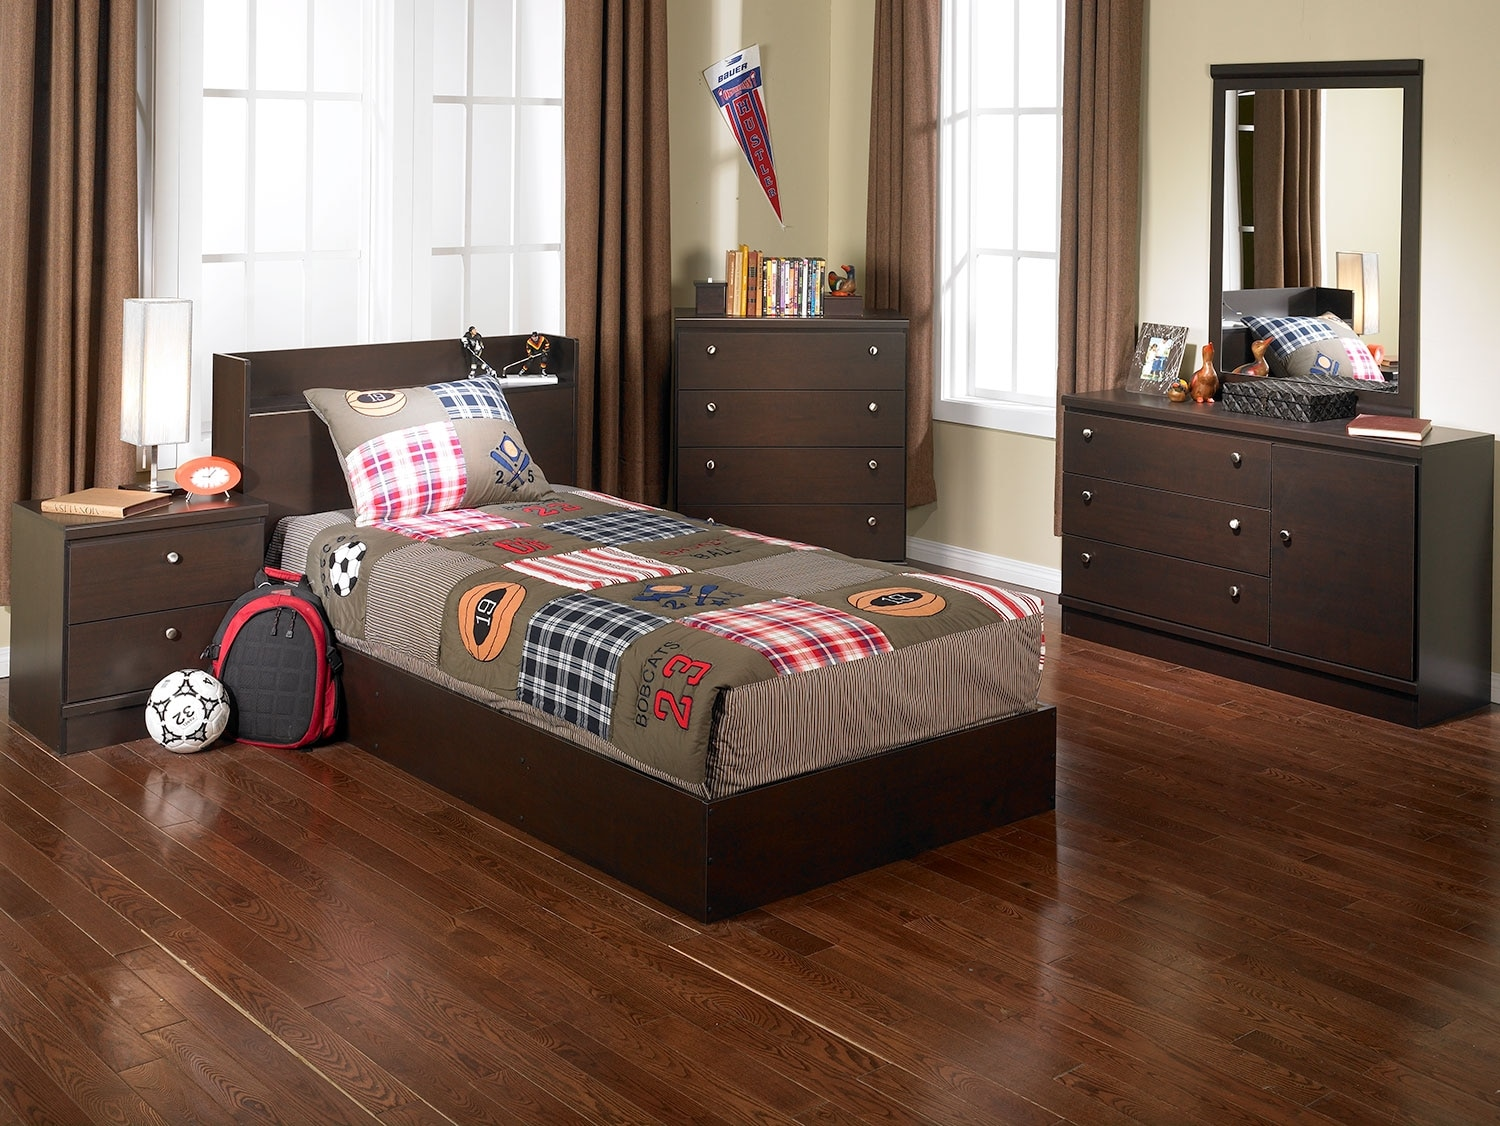 Kids Furniture - Big League 4-Piece Bedroom Package